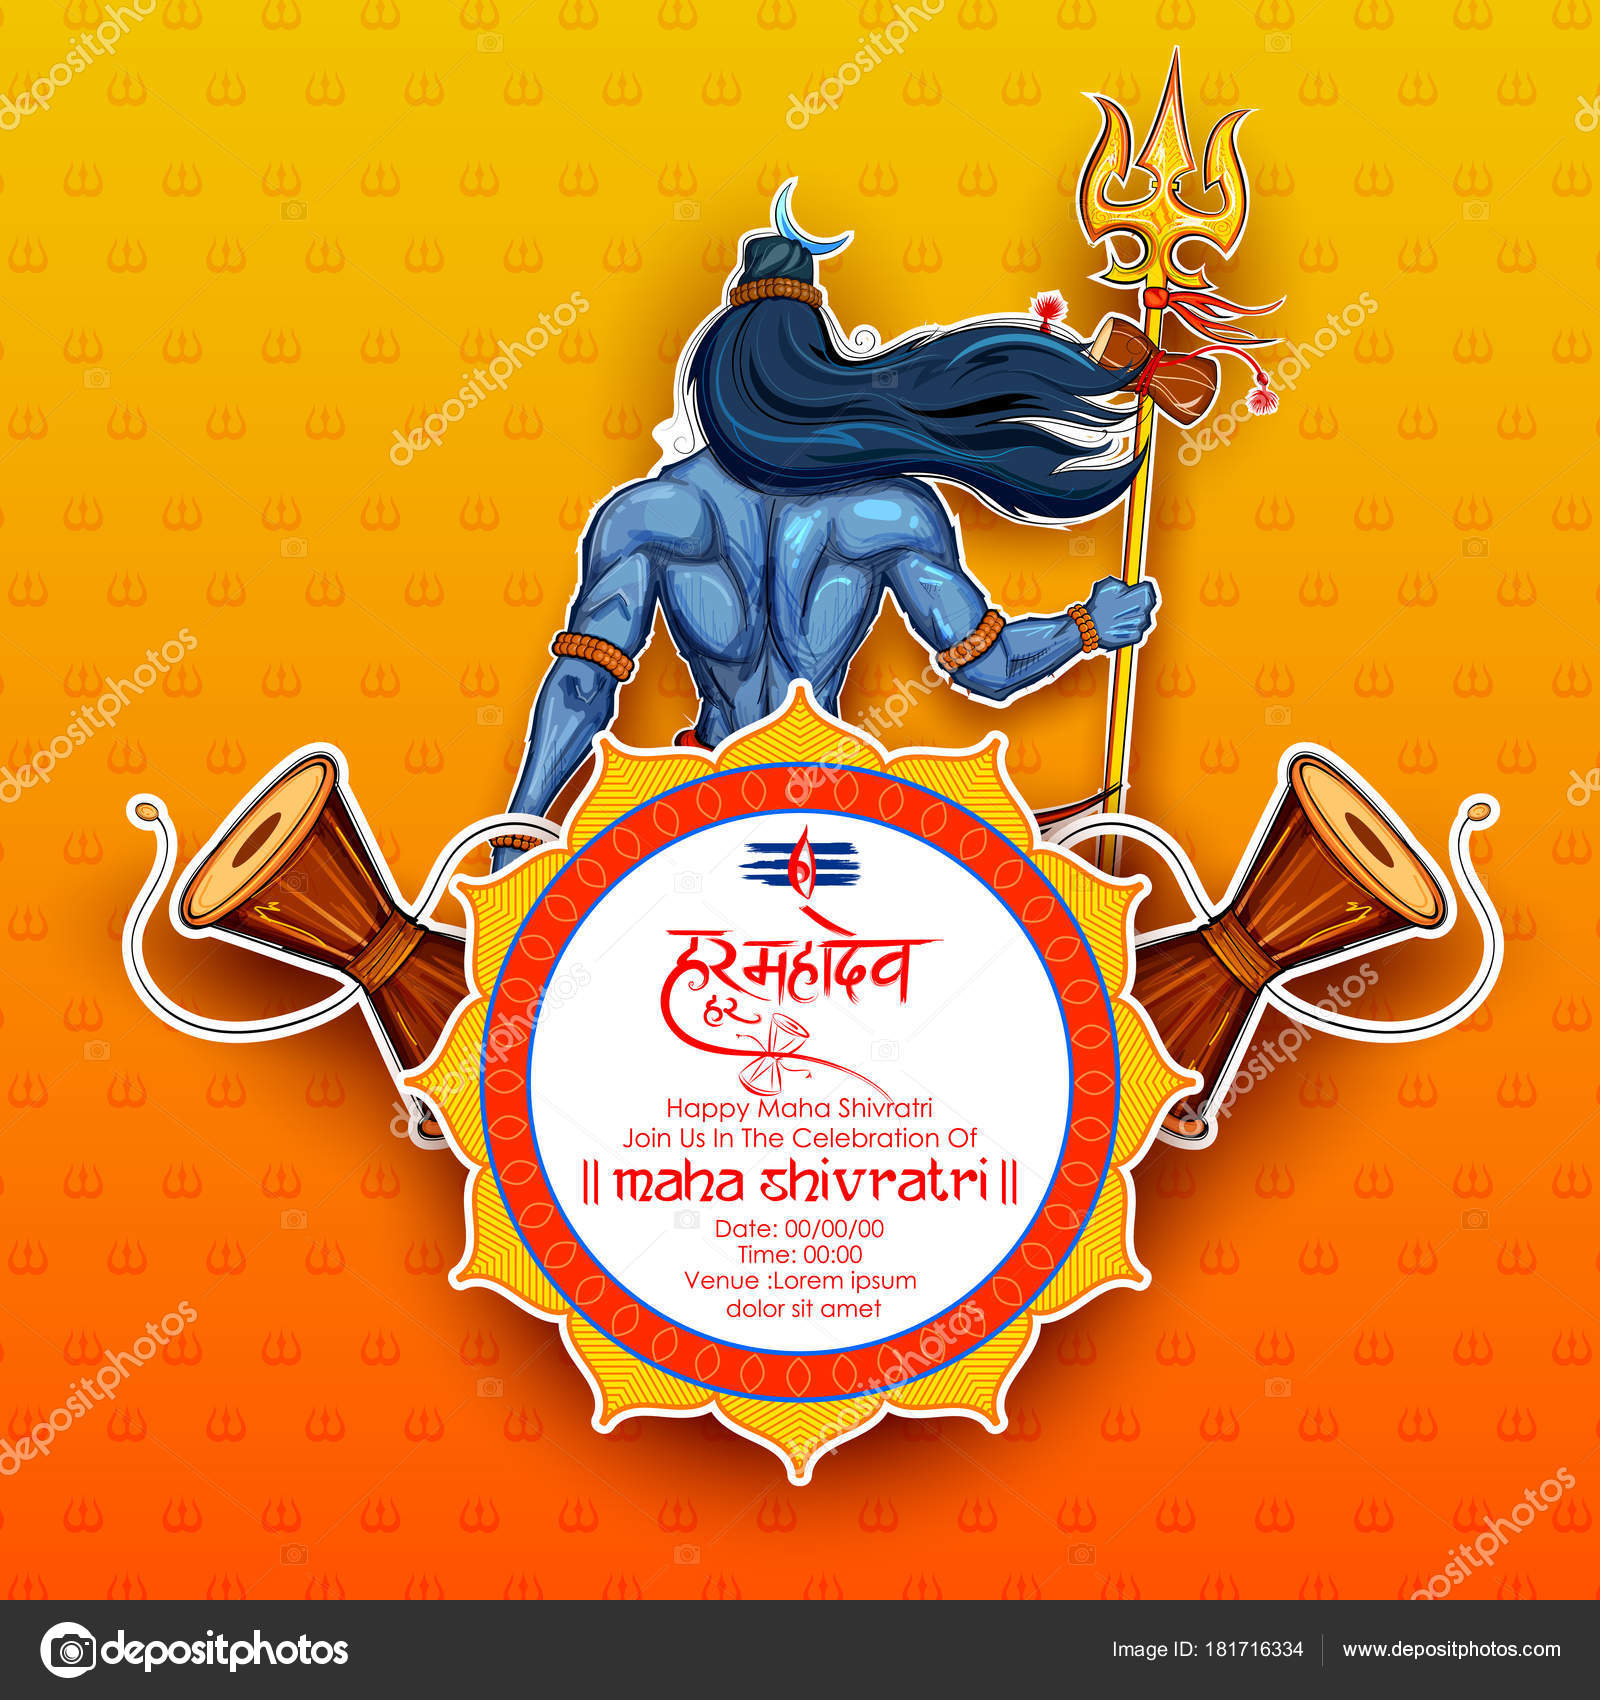 Lord shiva indian god of hindu for shivratri stock vector illustration of lord shiva indian god of hindu for shivratri with message hara hara mahadev meaning everyone is lord shiva vector by vectomart biocorpaavc Image collections